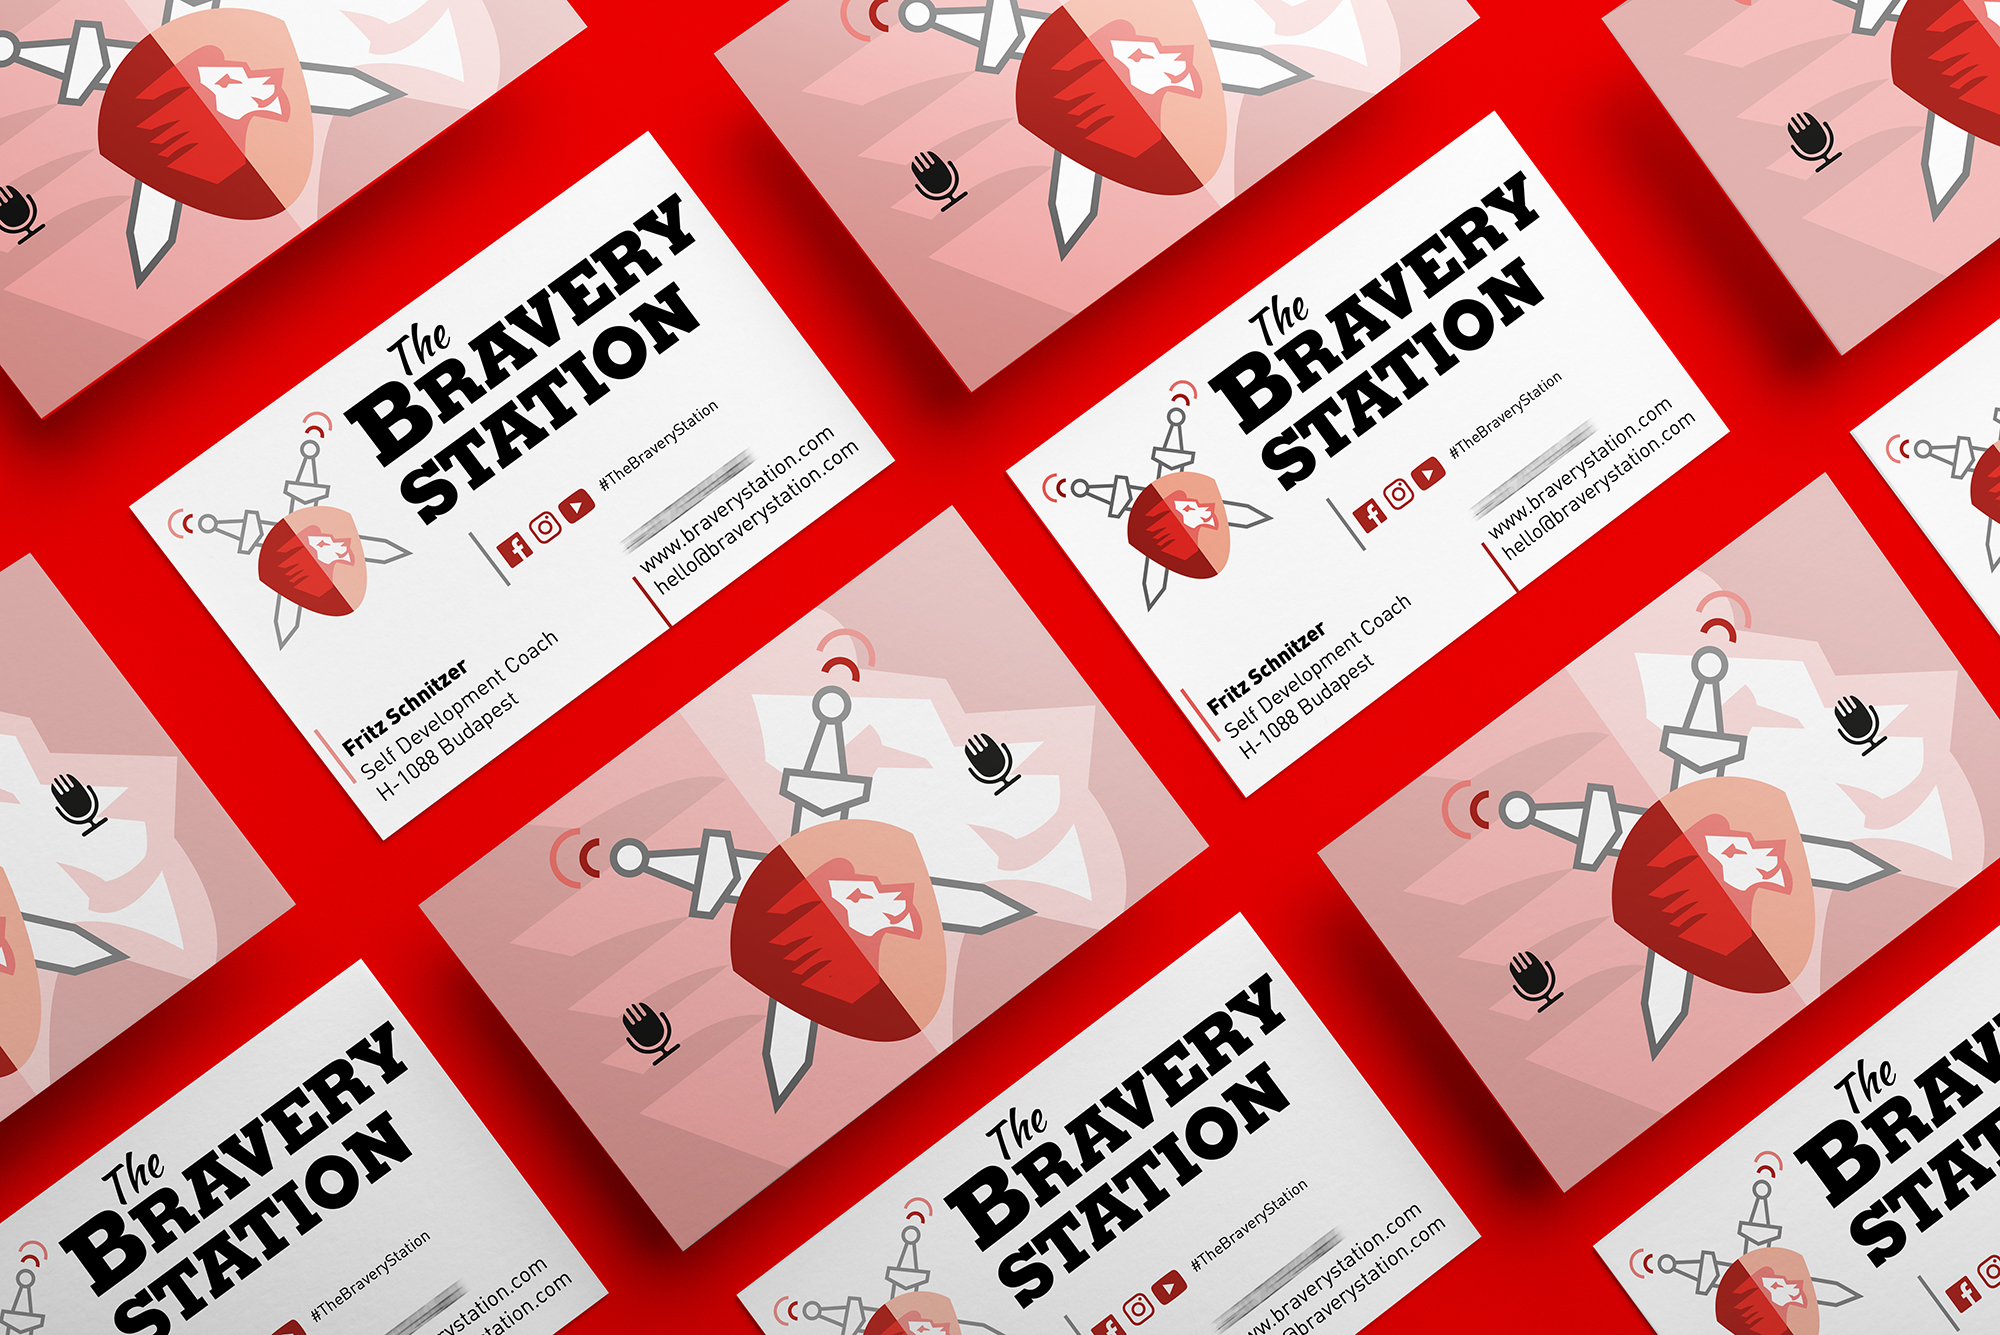 The Bravery Station business cards